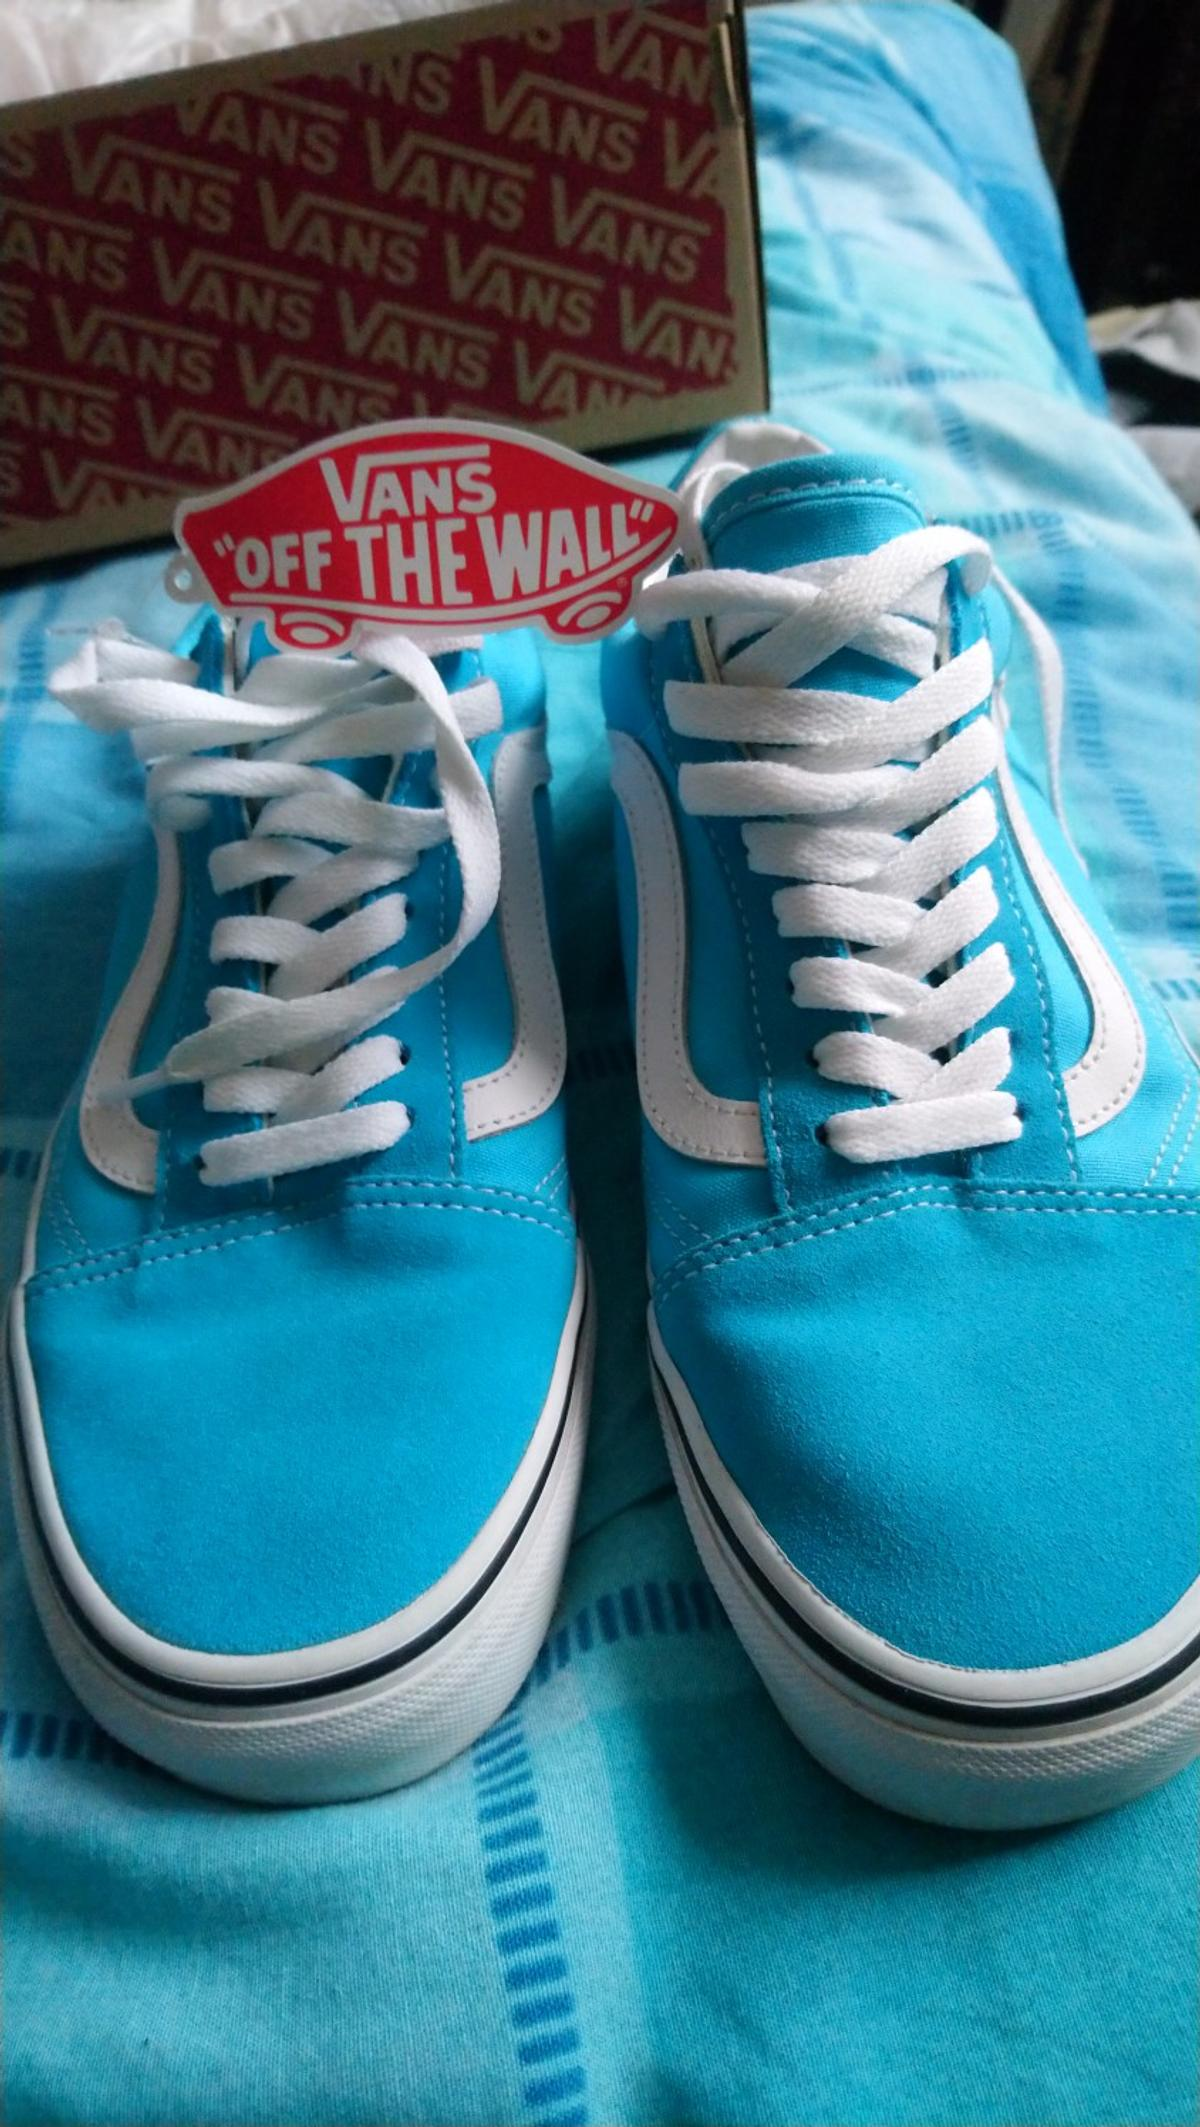 Brand new with tags unisex vans size 6.5 £35 ono